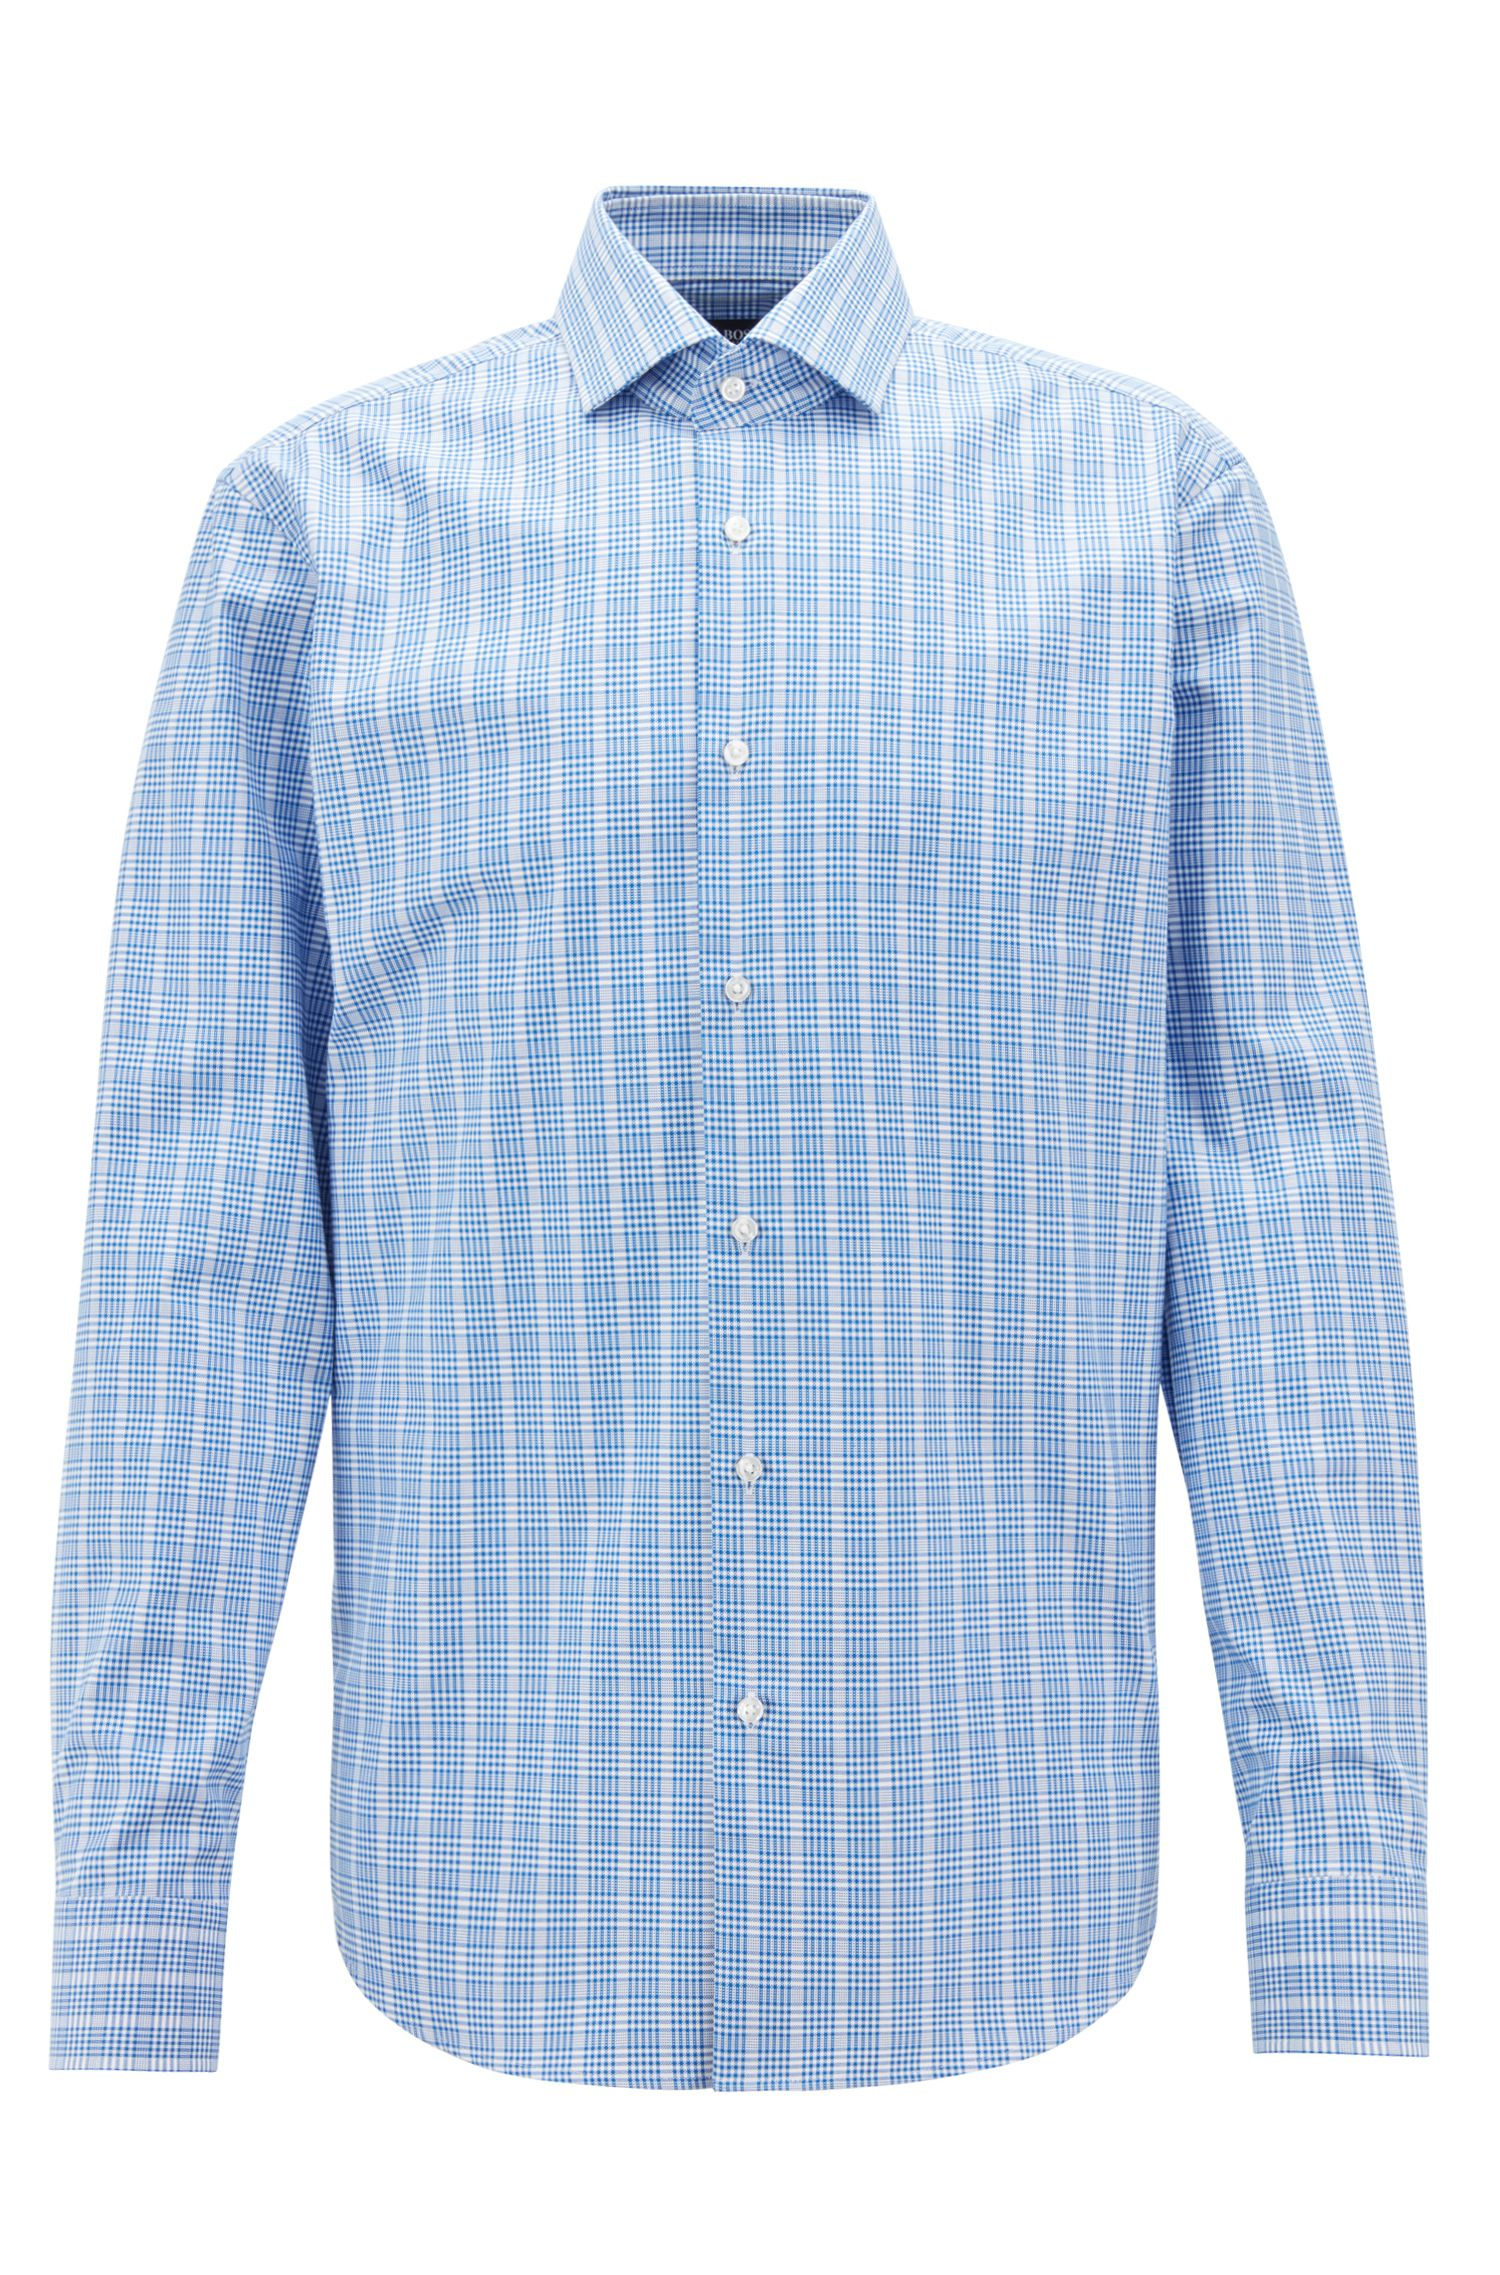 Glen-check shirt in cotton with Fresh Active finishing, Blue